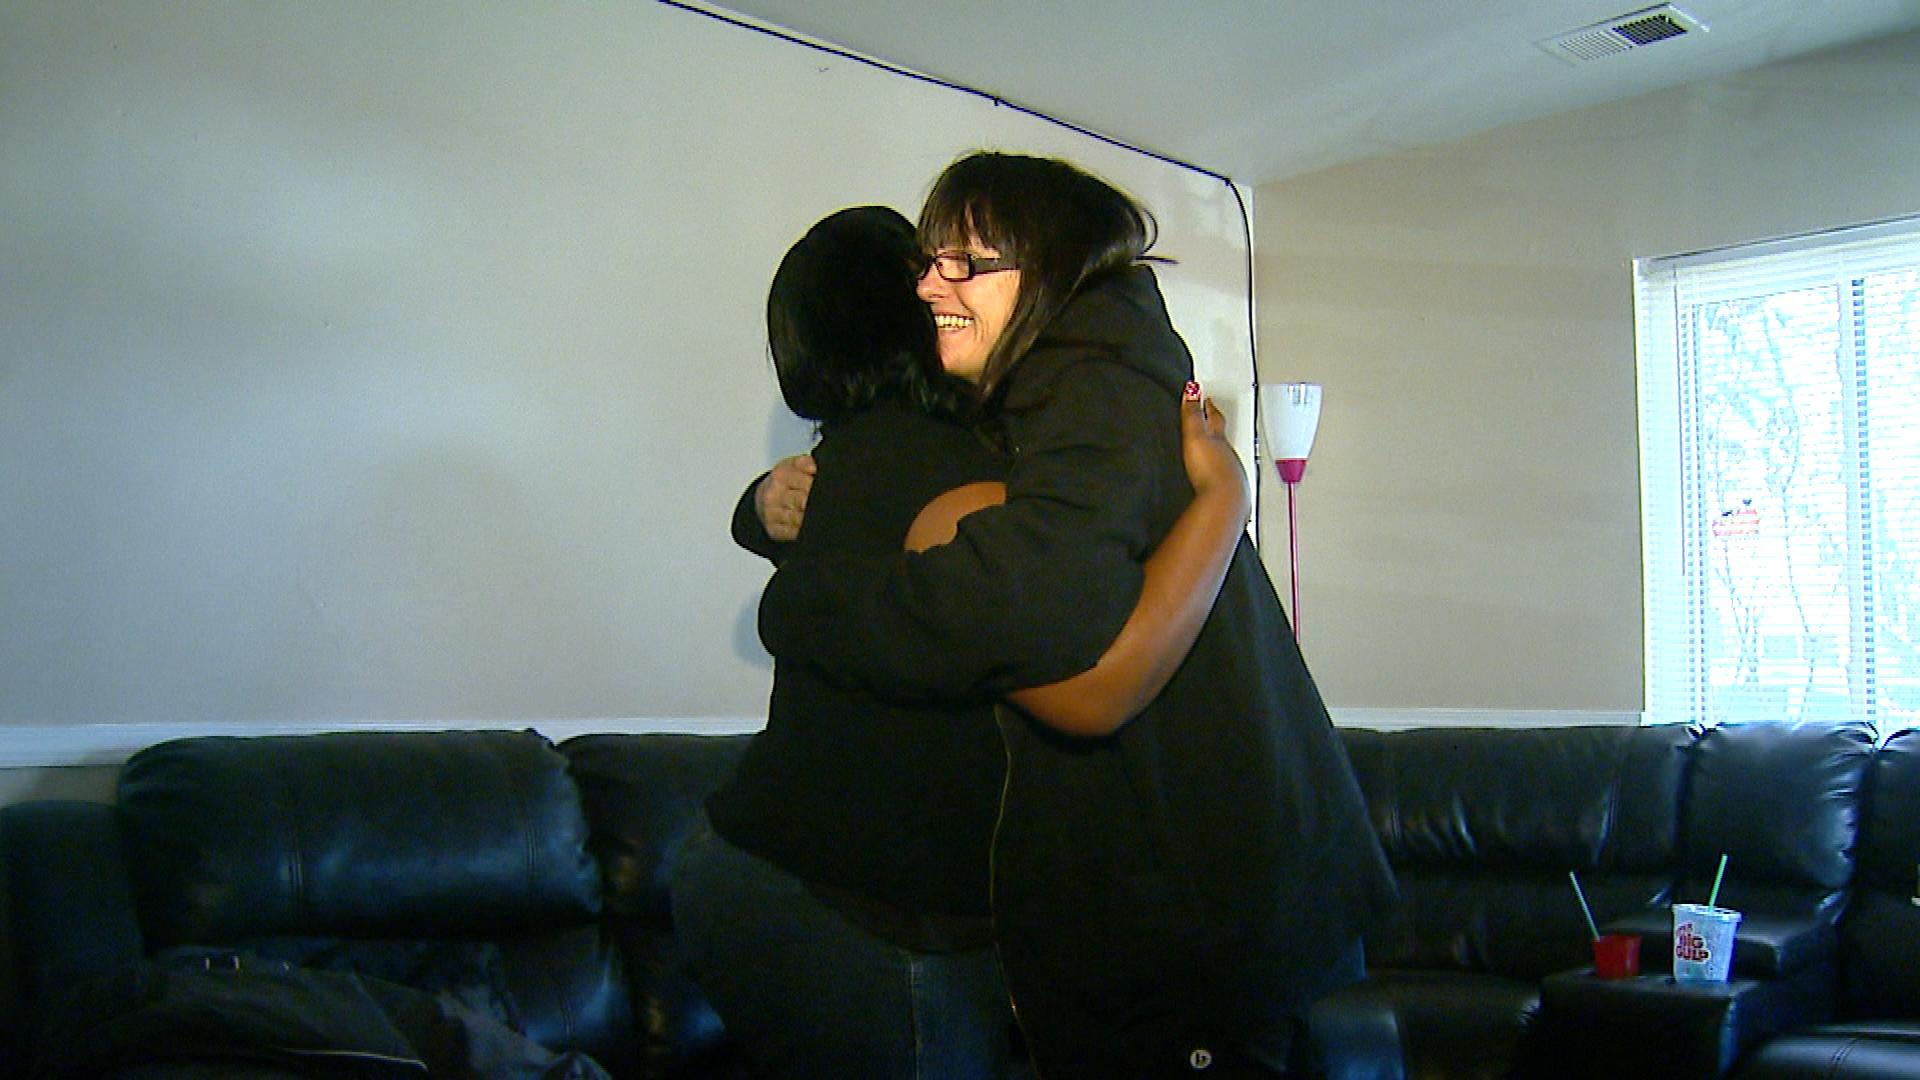 Shanequa Lewis shares a hug with There With Care founder Paula Dupre Pesmen (credit: CBS)